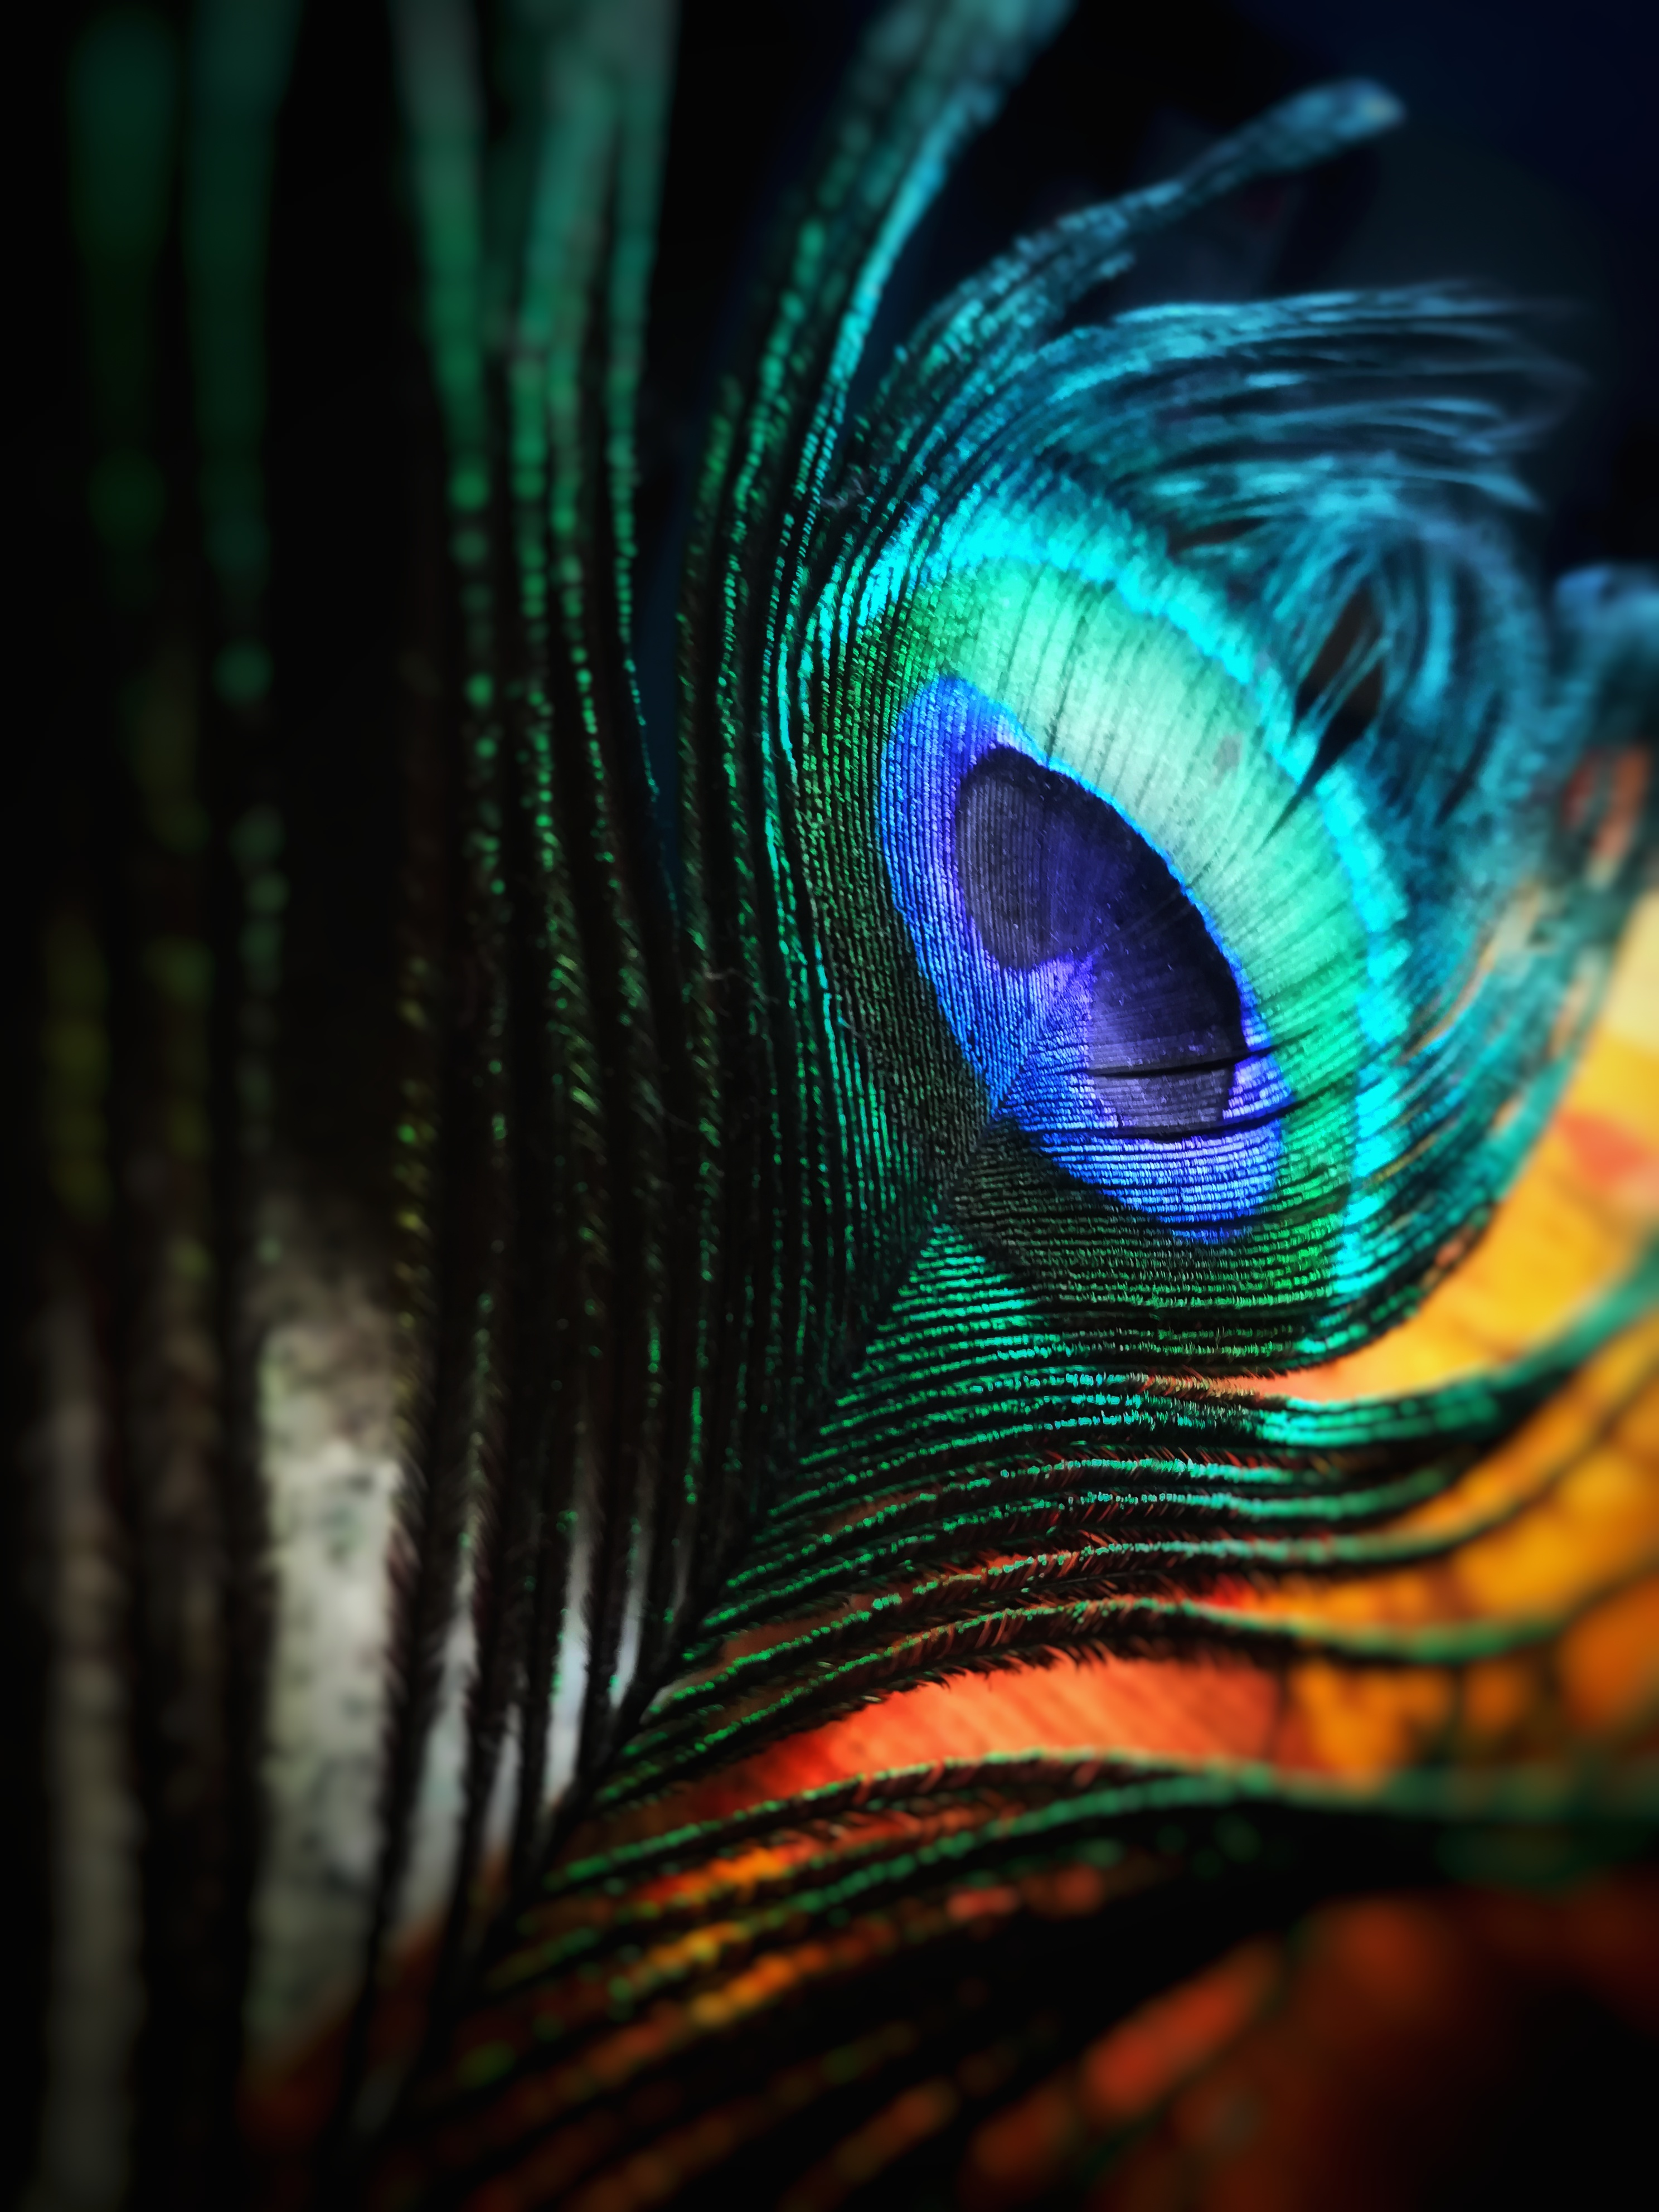 Peacock Feather (via Pexels)